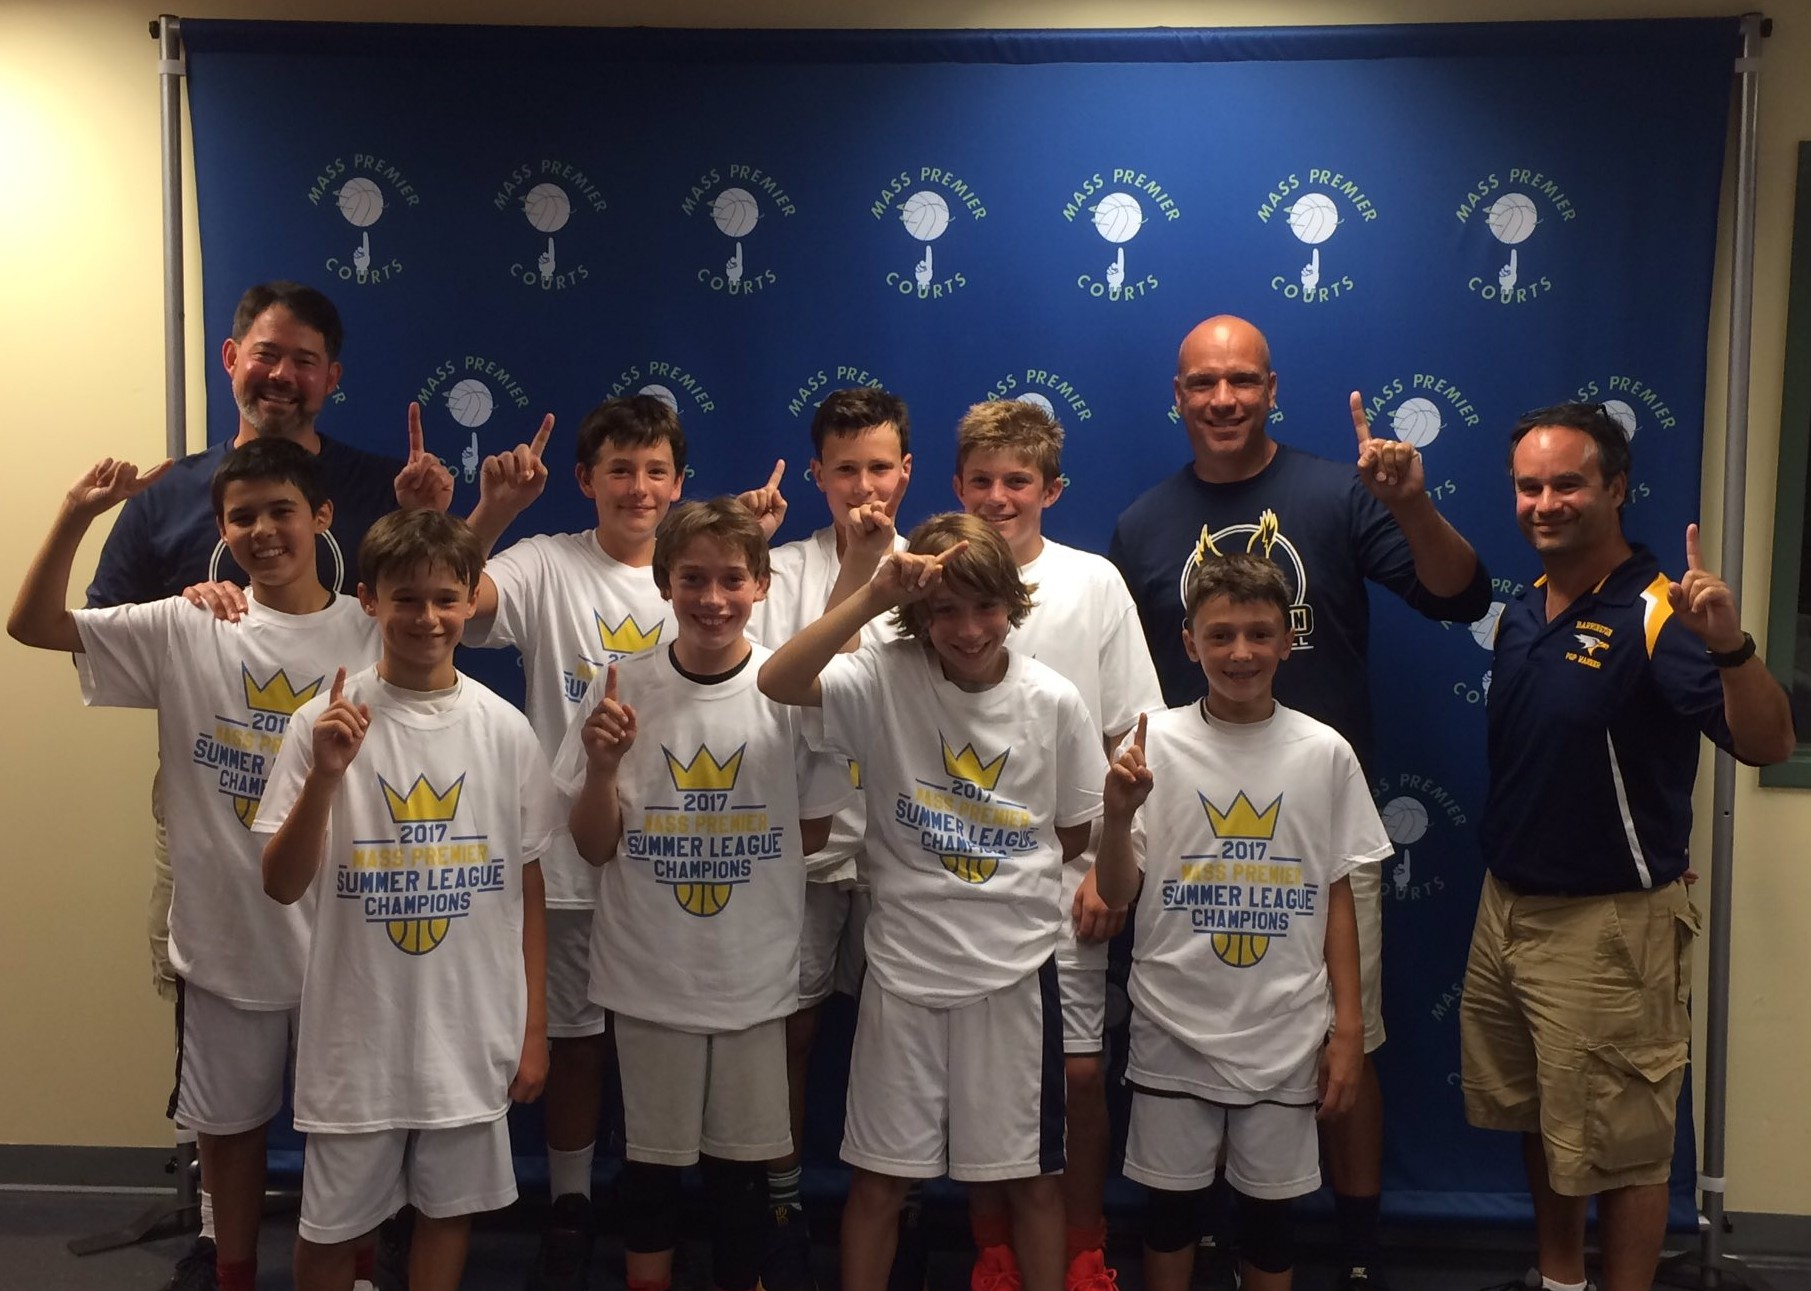 The Barrington Youth Basketball Association's Sixth Grade team recently won the Division 1 Championship in the Mass Premier Courts Summer League.